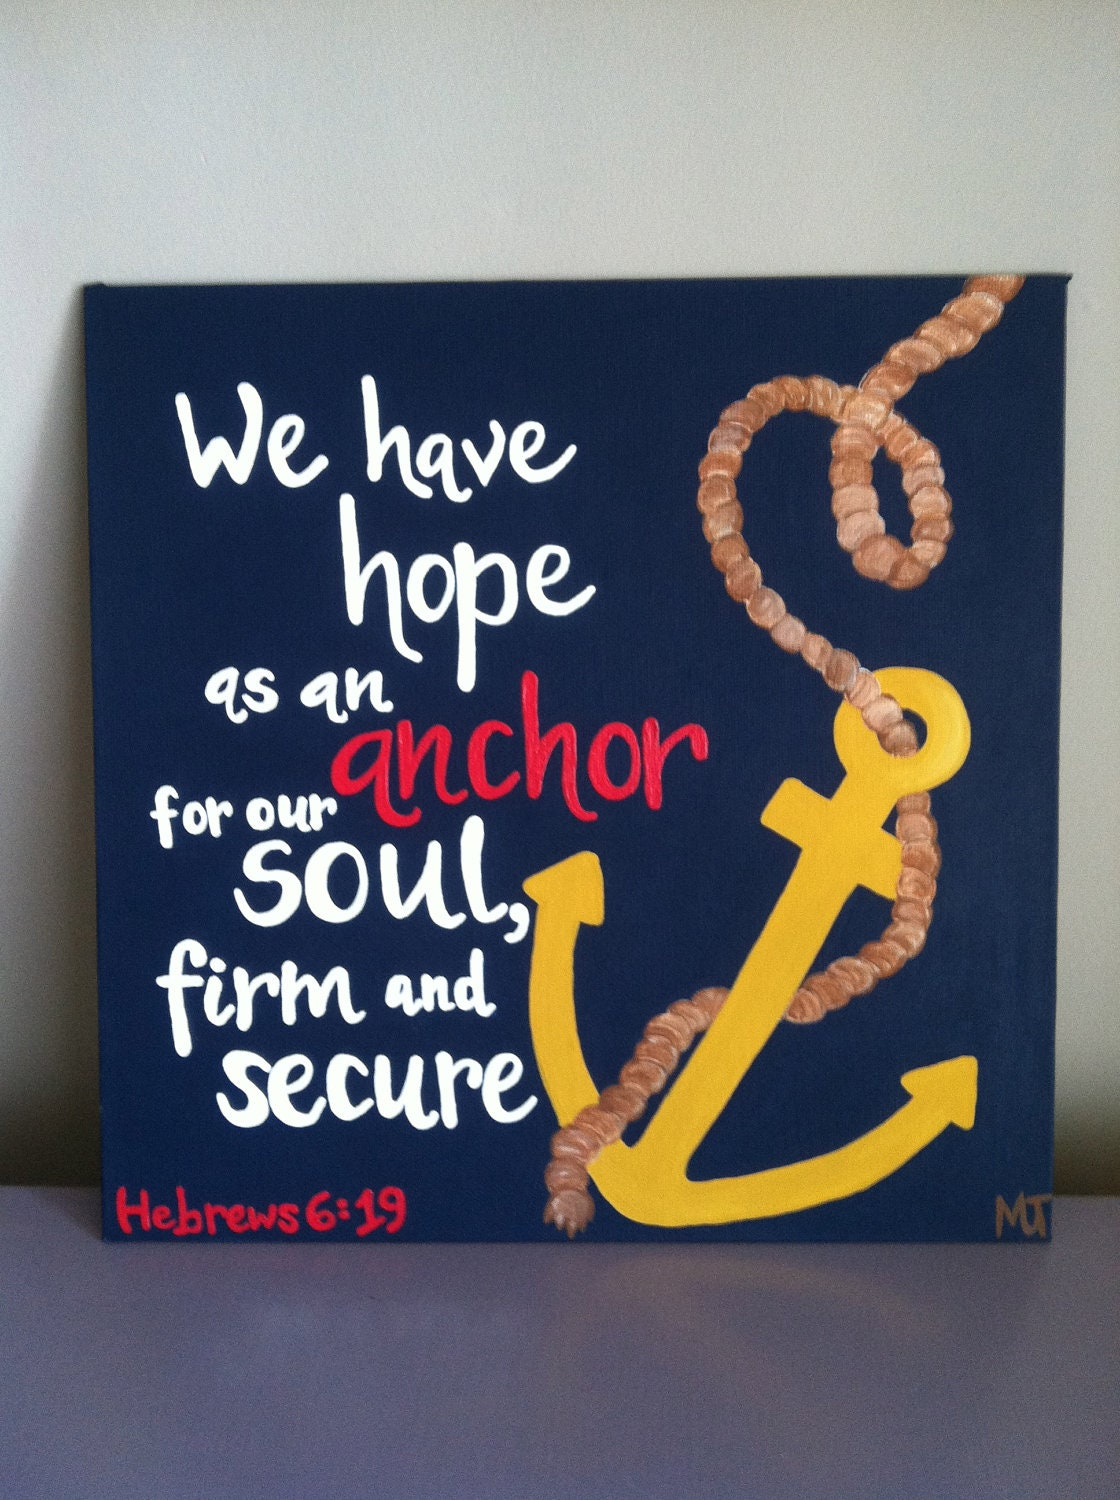 hebrews 6 19 bible verse art 12x12 hand painted canvas panel